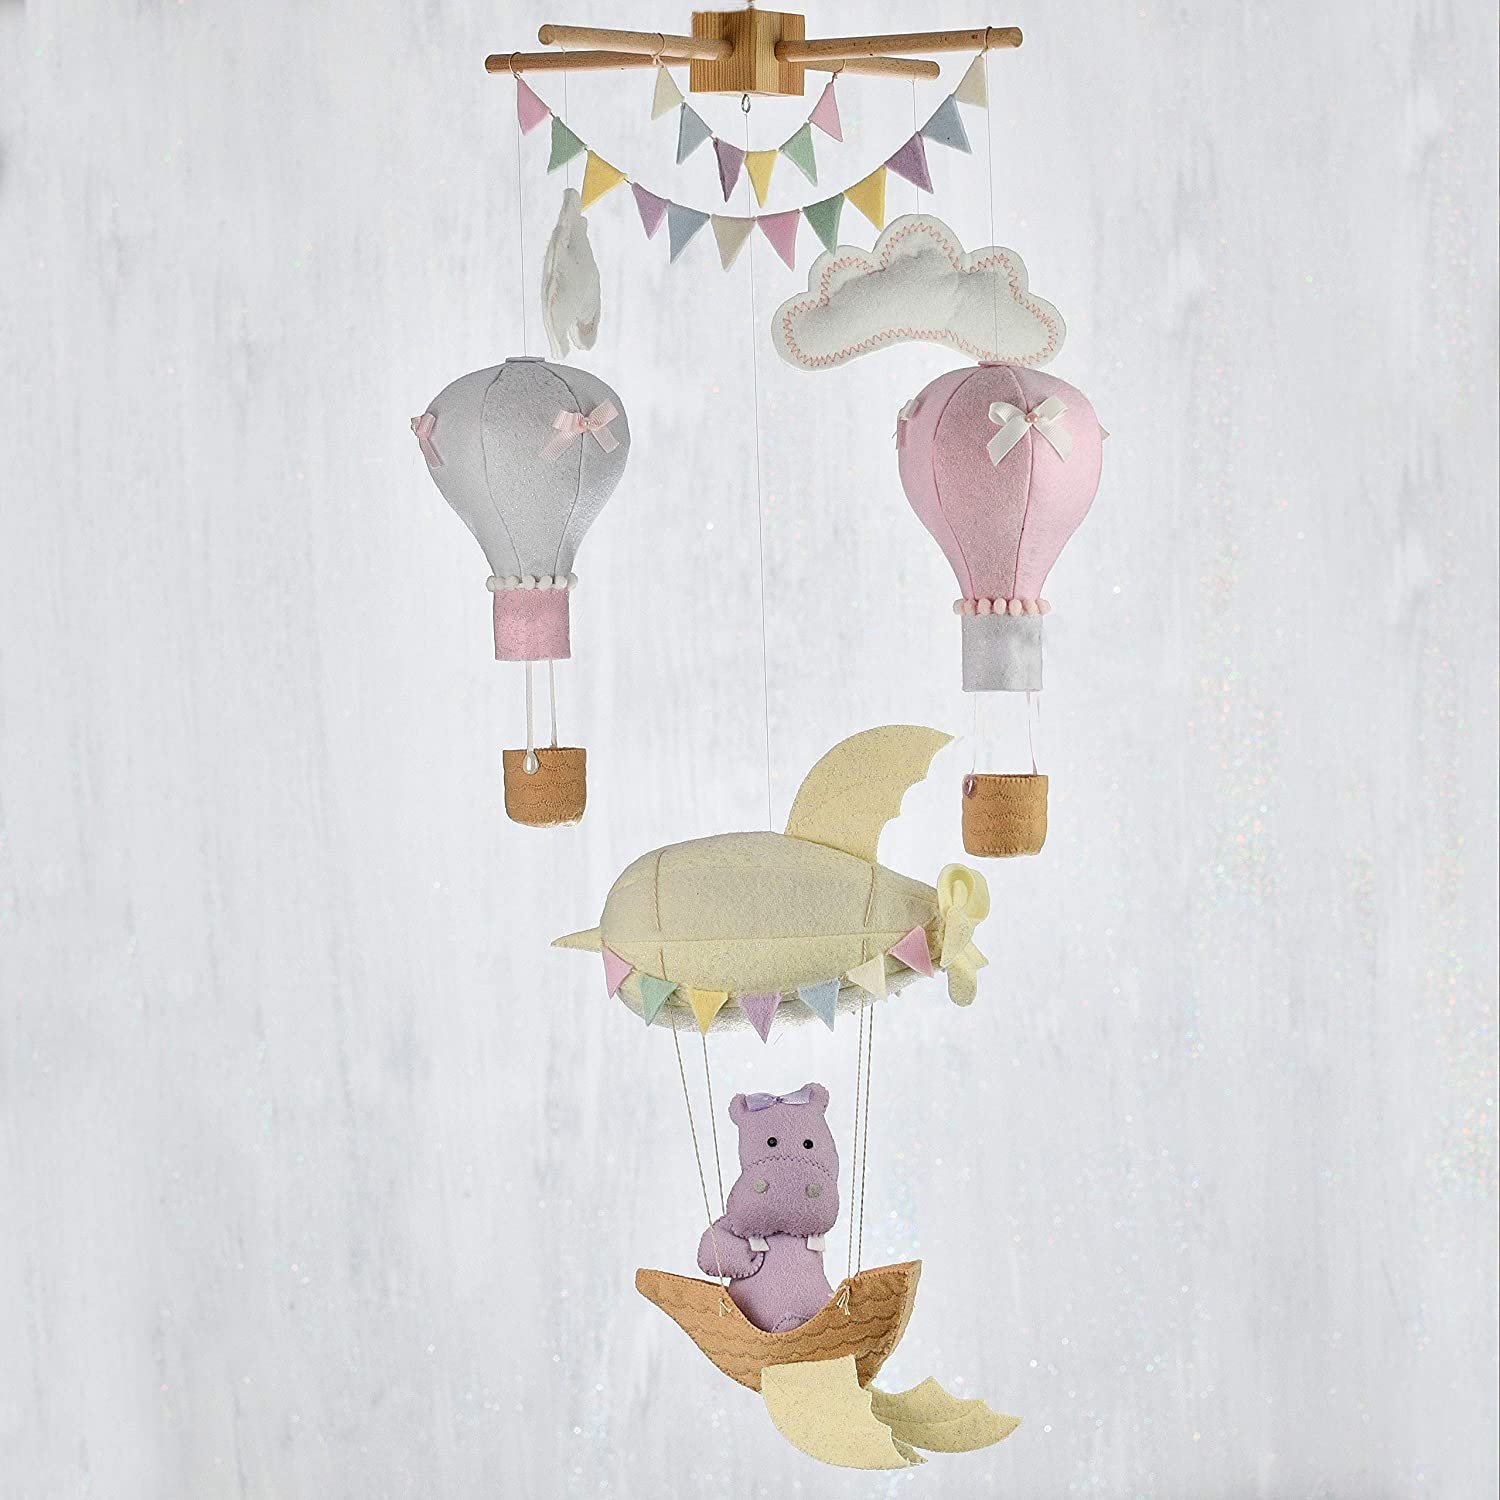 Baby mobile hot air balloons/Travel theme nursery mobile/Airship & balloons baby mobile/Handmade baby mobile/3 DAYS DELIVERY TO USA, CANADA & EUROPE BY UPS